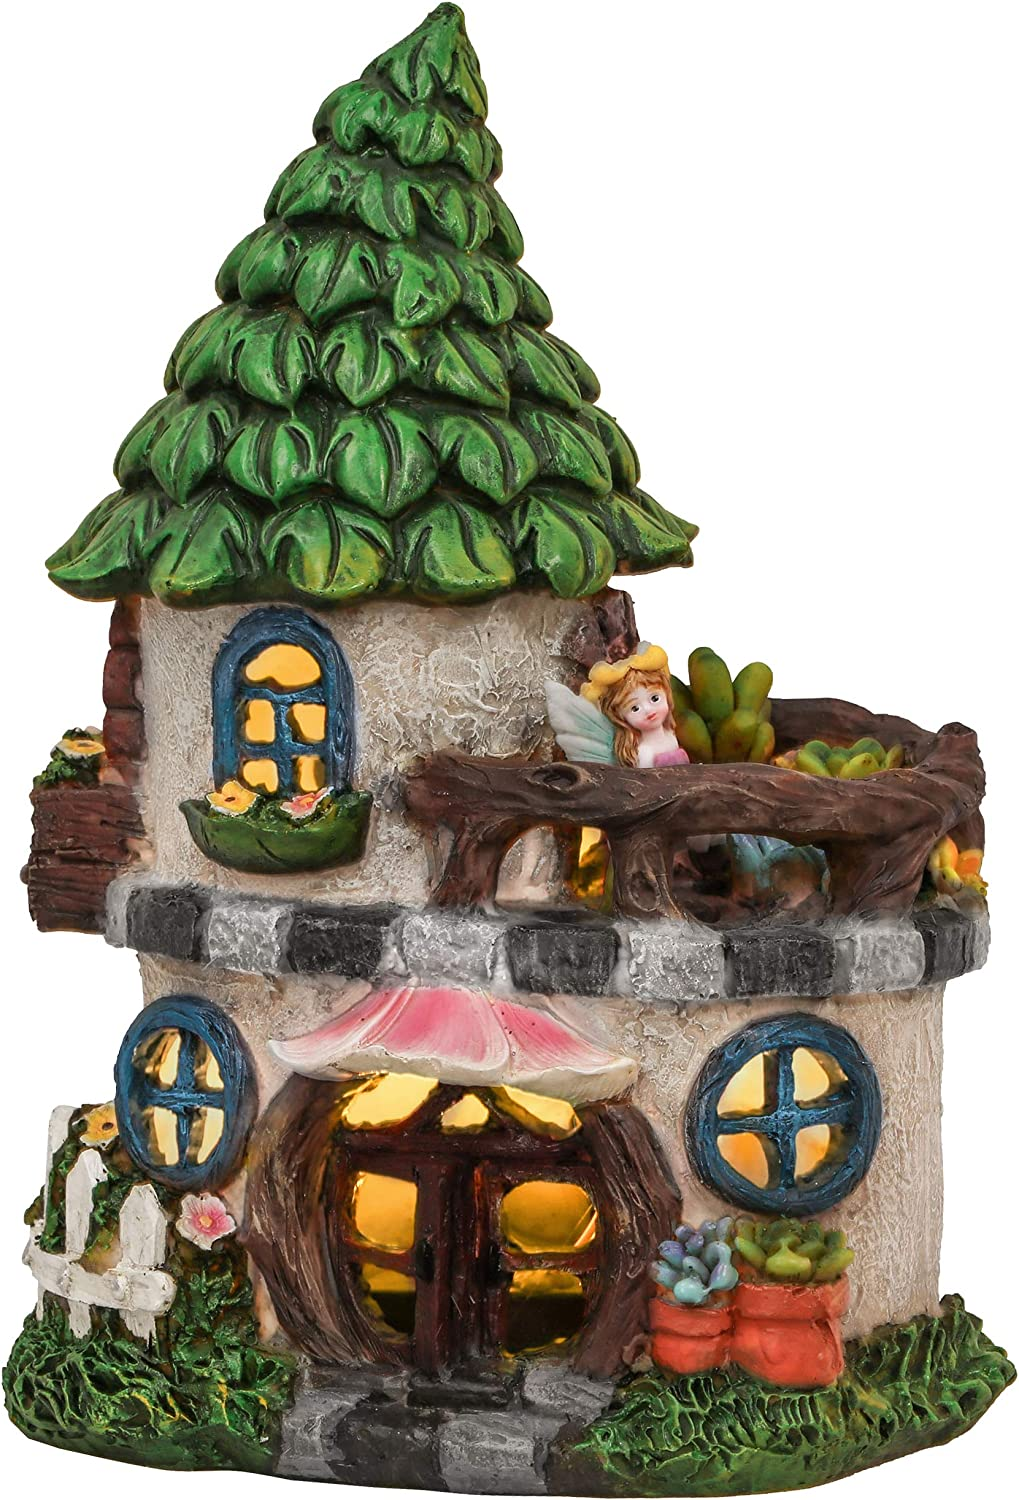 TERESA'S COLLECTIONS Fairy Garden House Statues with Solar Powered Lights, Waterproof Resin Outdoor Angel Cottage Figurines for Patio Lawn Yard Decorations, 8.7 Inch